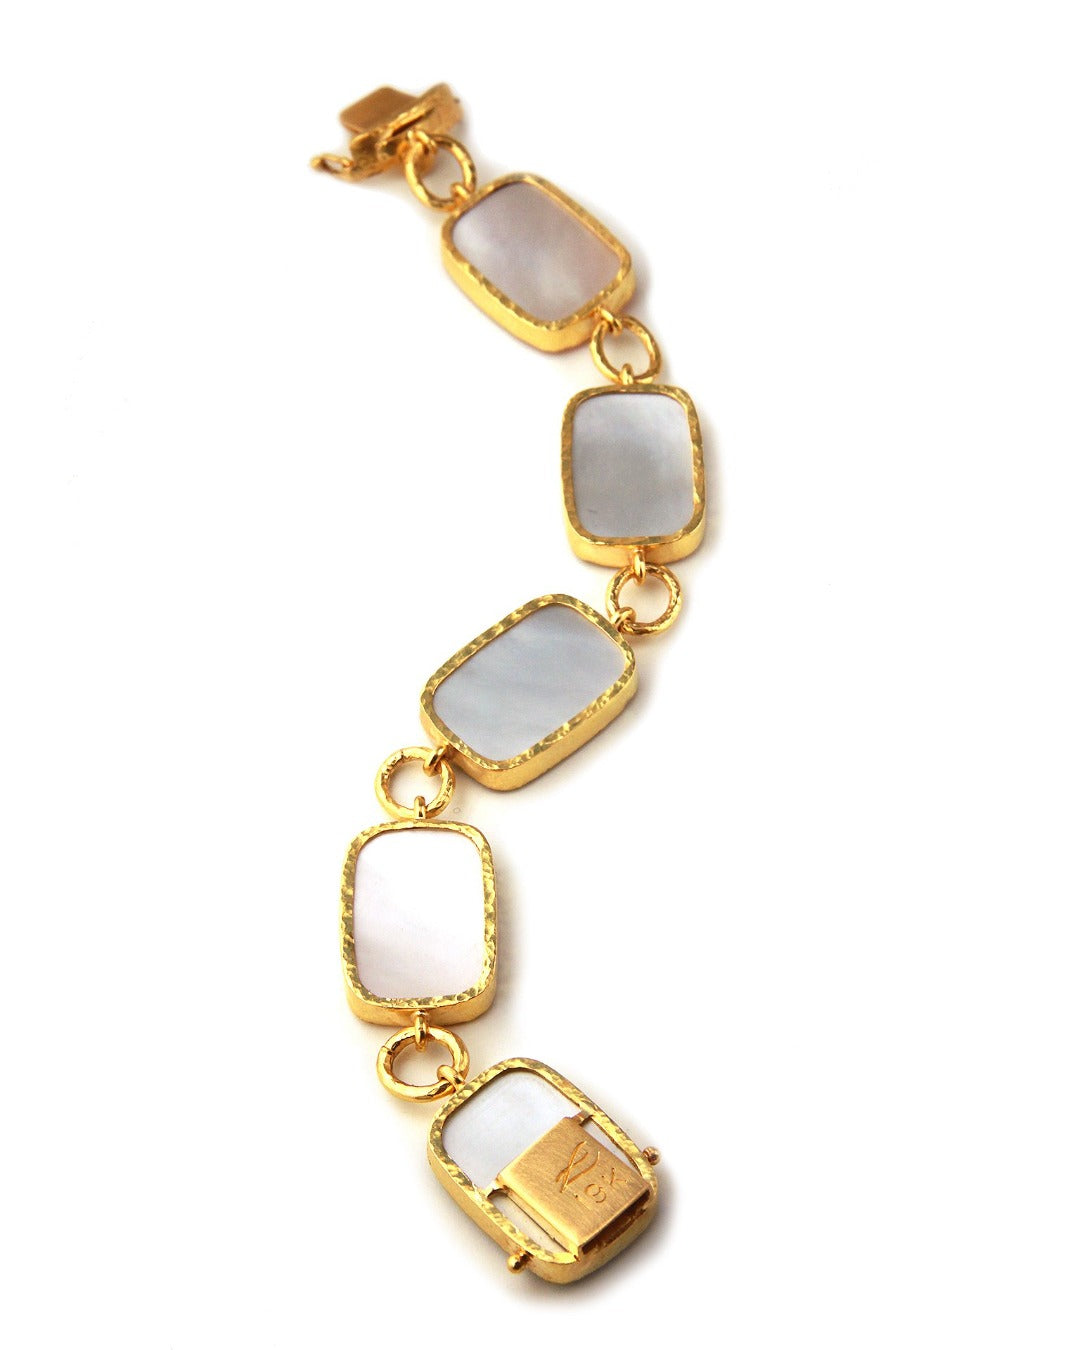 Elizabeth Locke New Muse Neutral Venetian Glass Intaglio Bracelet